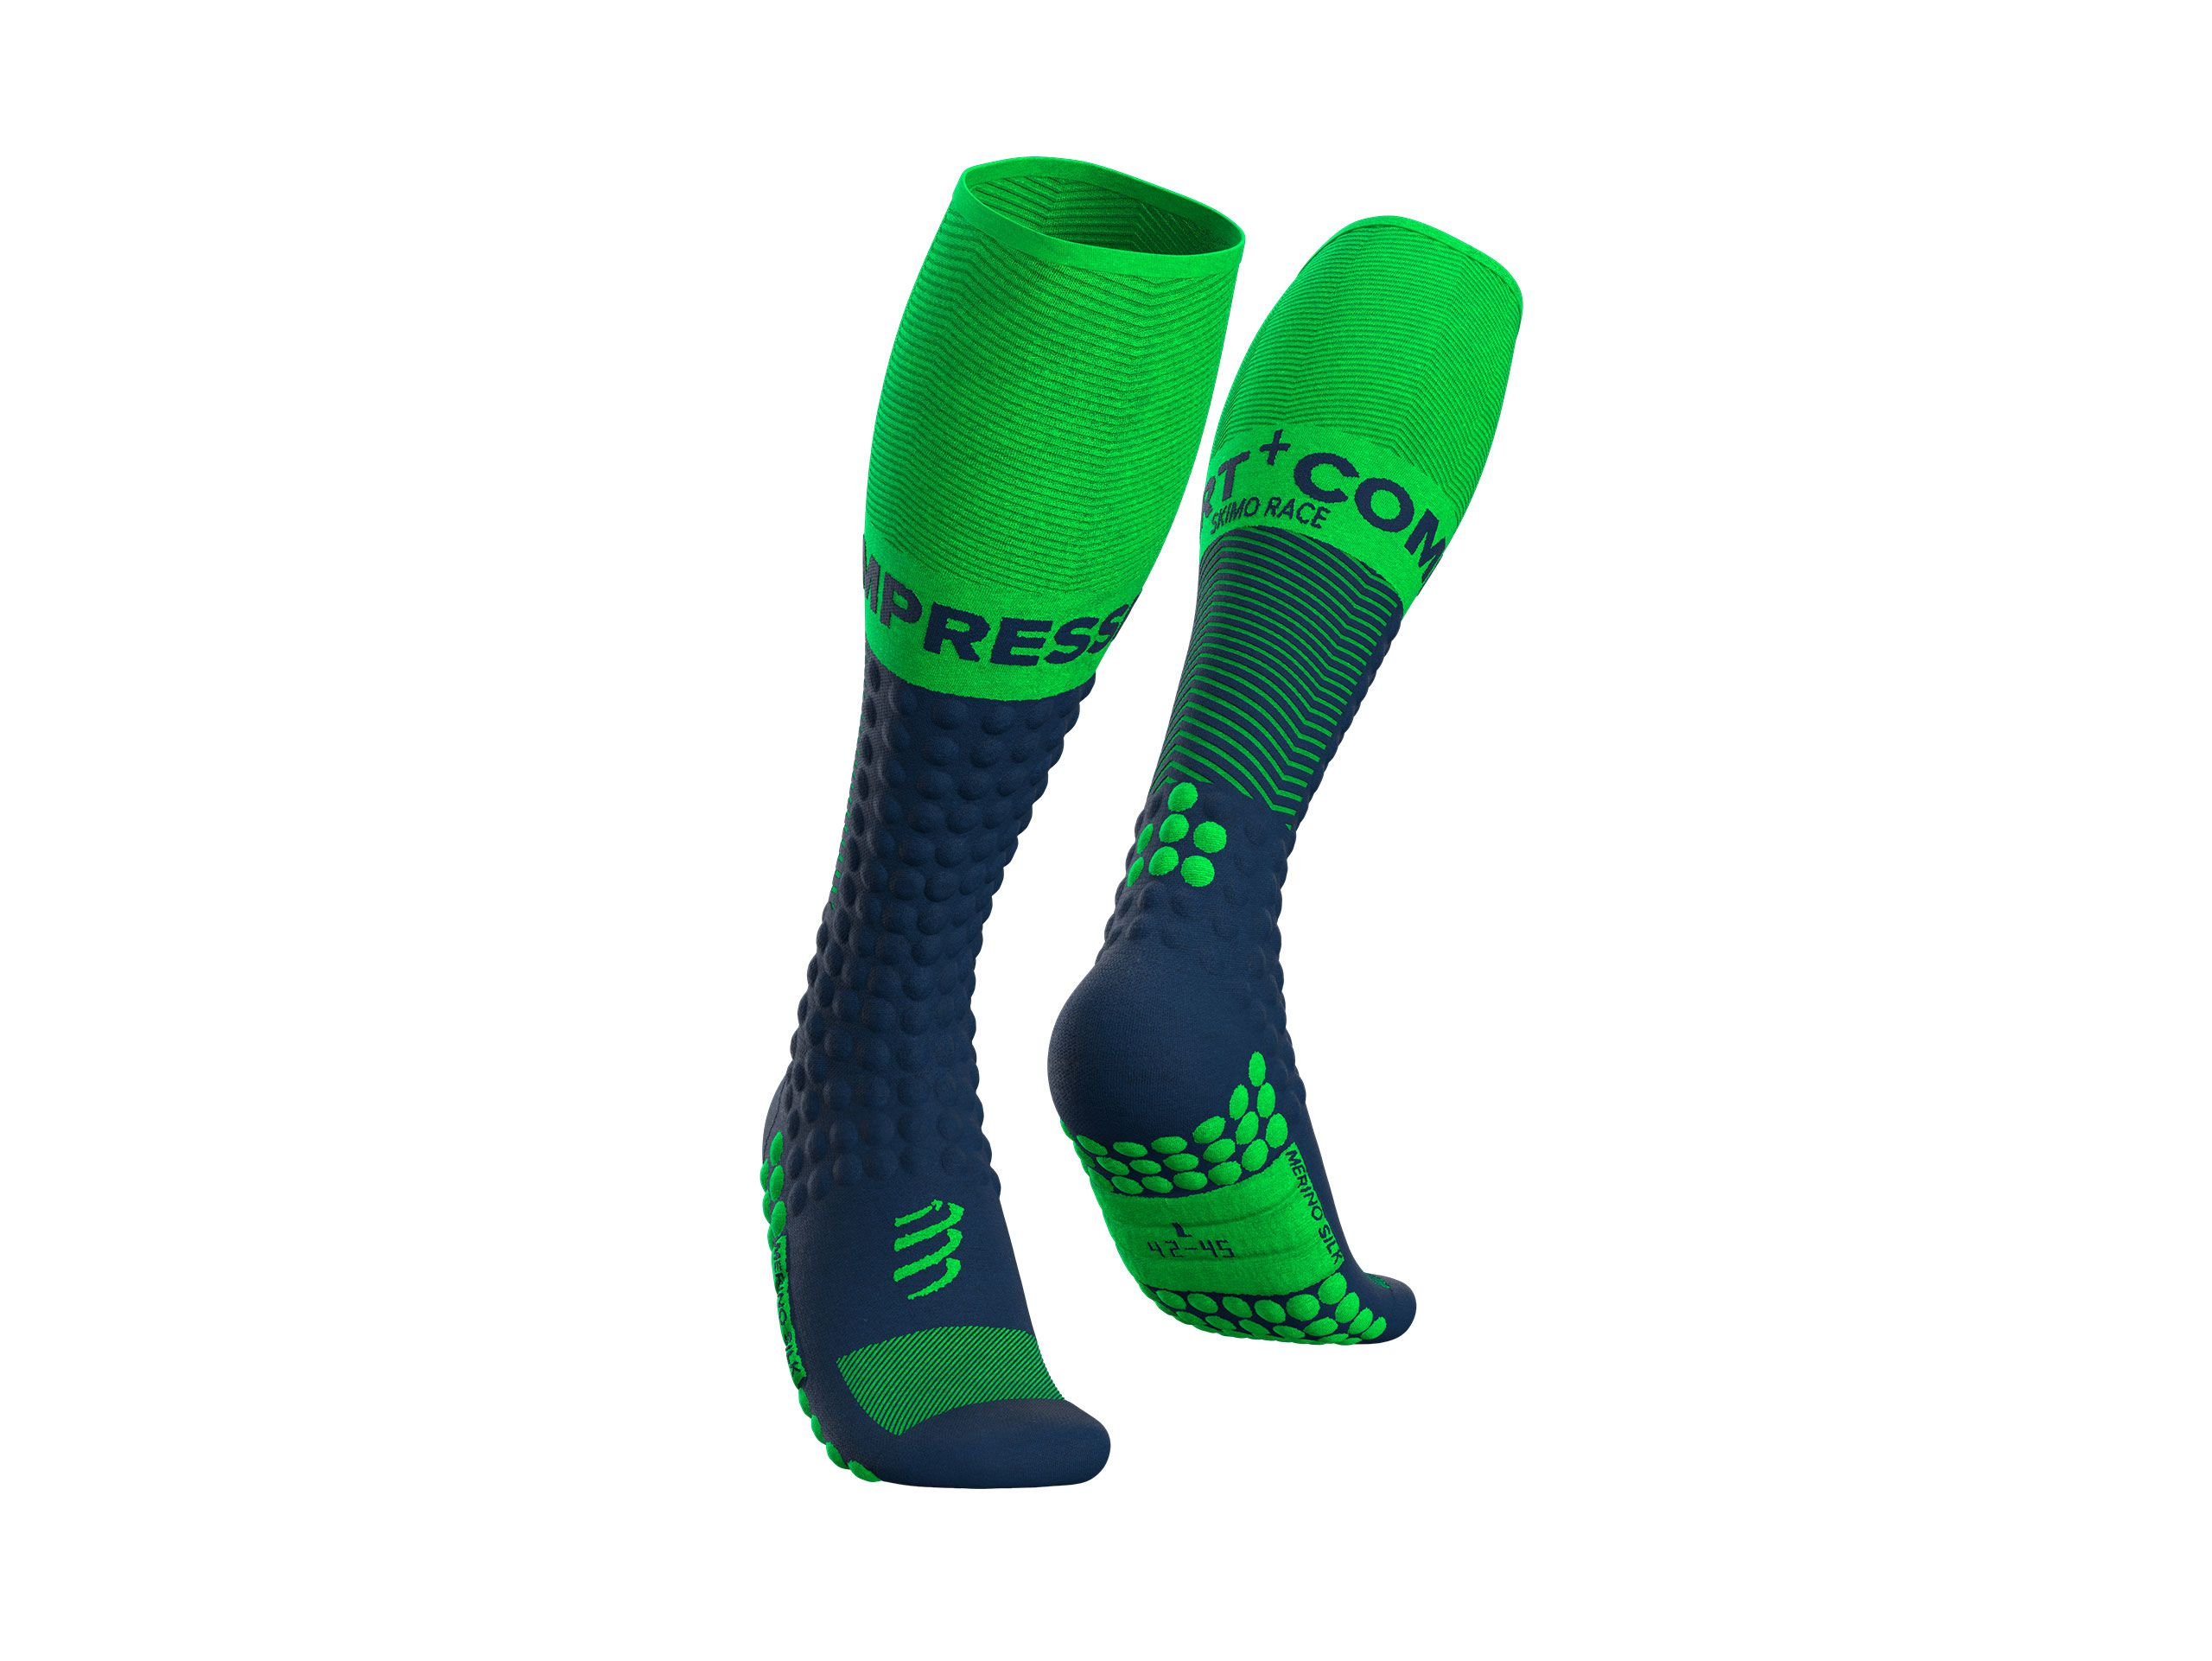 Skimo Full Socks - Blue Lime